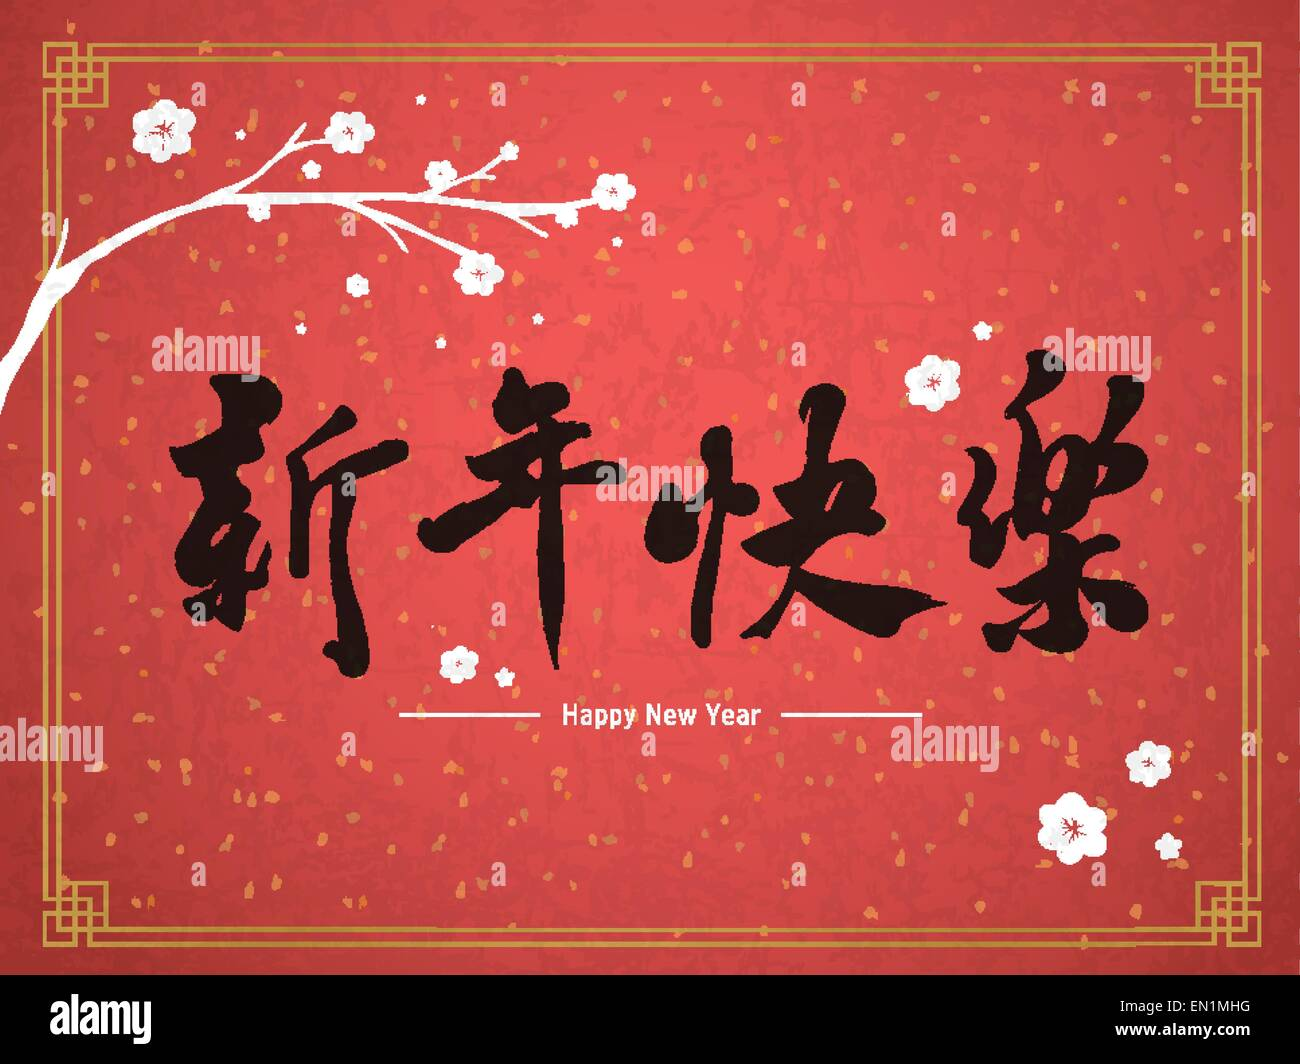 happy chinese new year essay The chinese new year festival is a high-spirited, content time where family and friends come together in order to celebrate years of tradition, such as feasts, decorations, gifts, envelopes, mythology, fortune gods, national pride, etc.